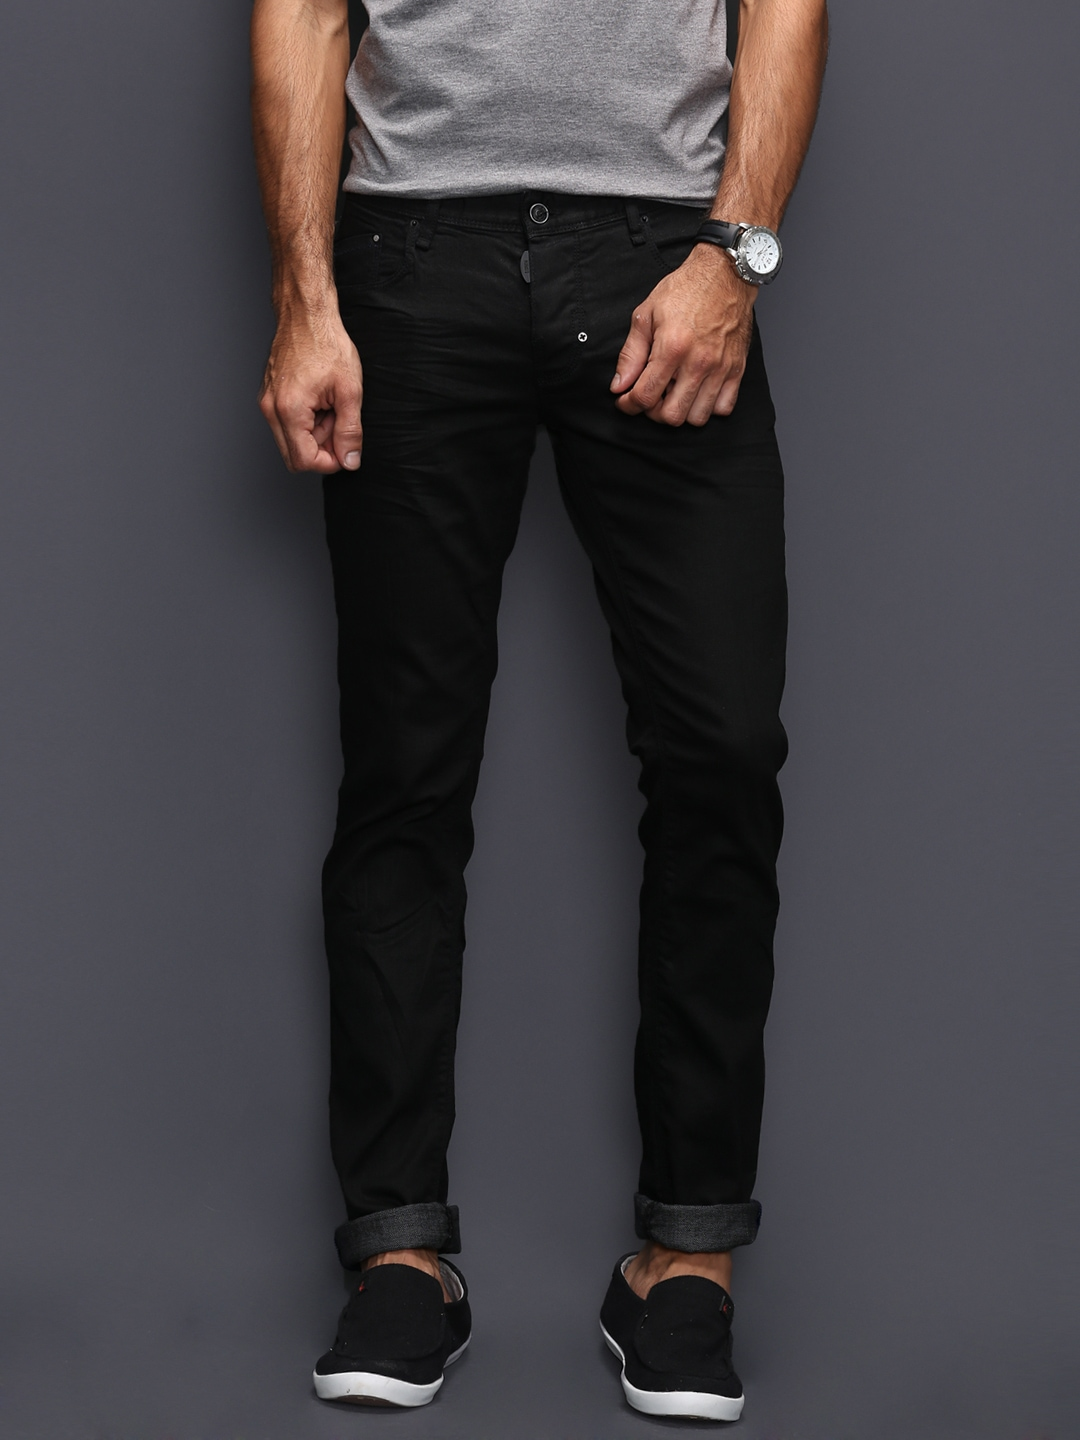 Slim Fit Black Jeans Mens - Jeans Am